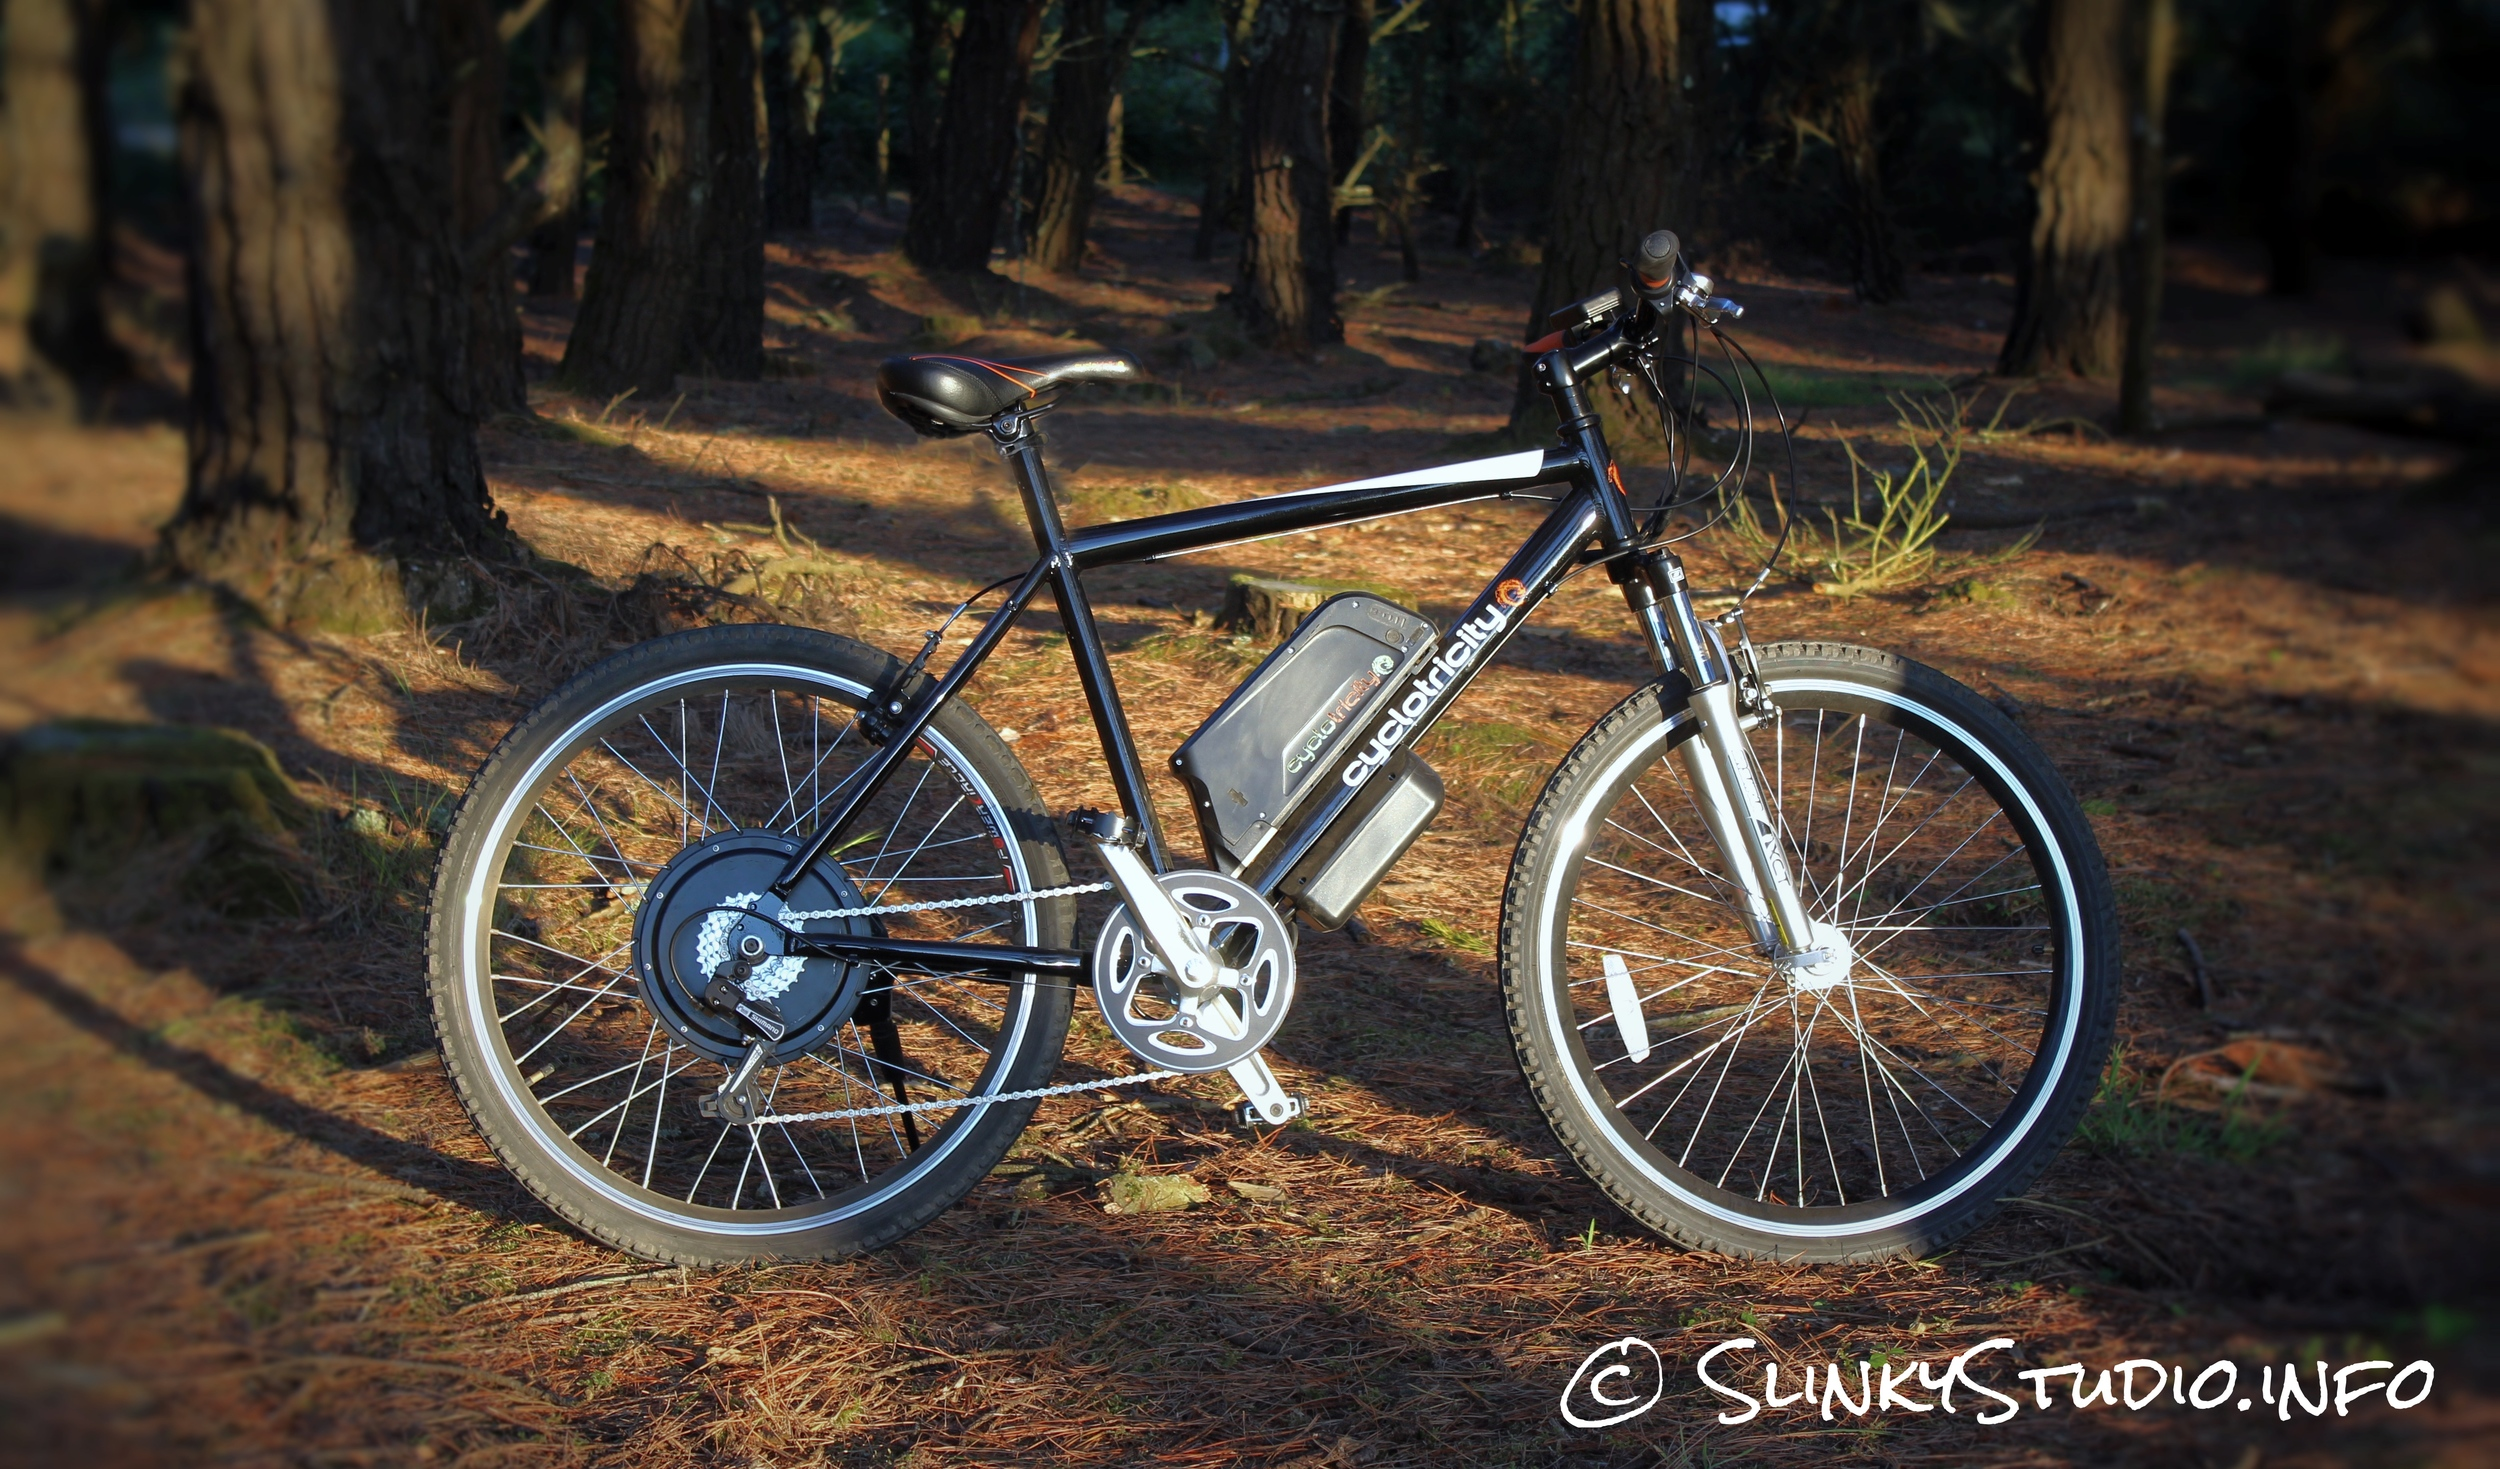 Cyclotricity Revolver 500W eBike Standing in Woods